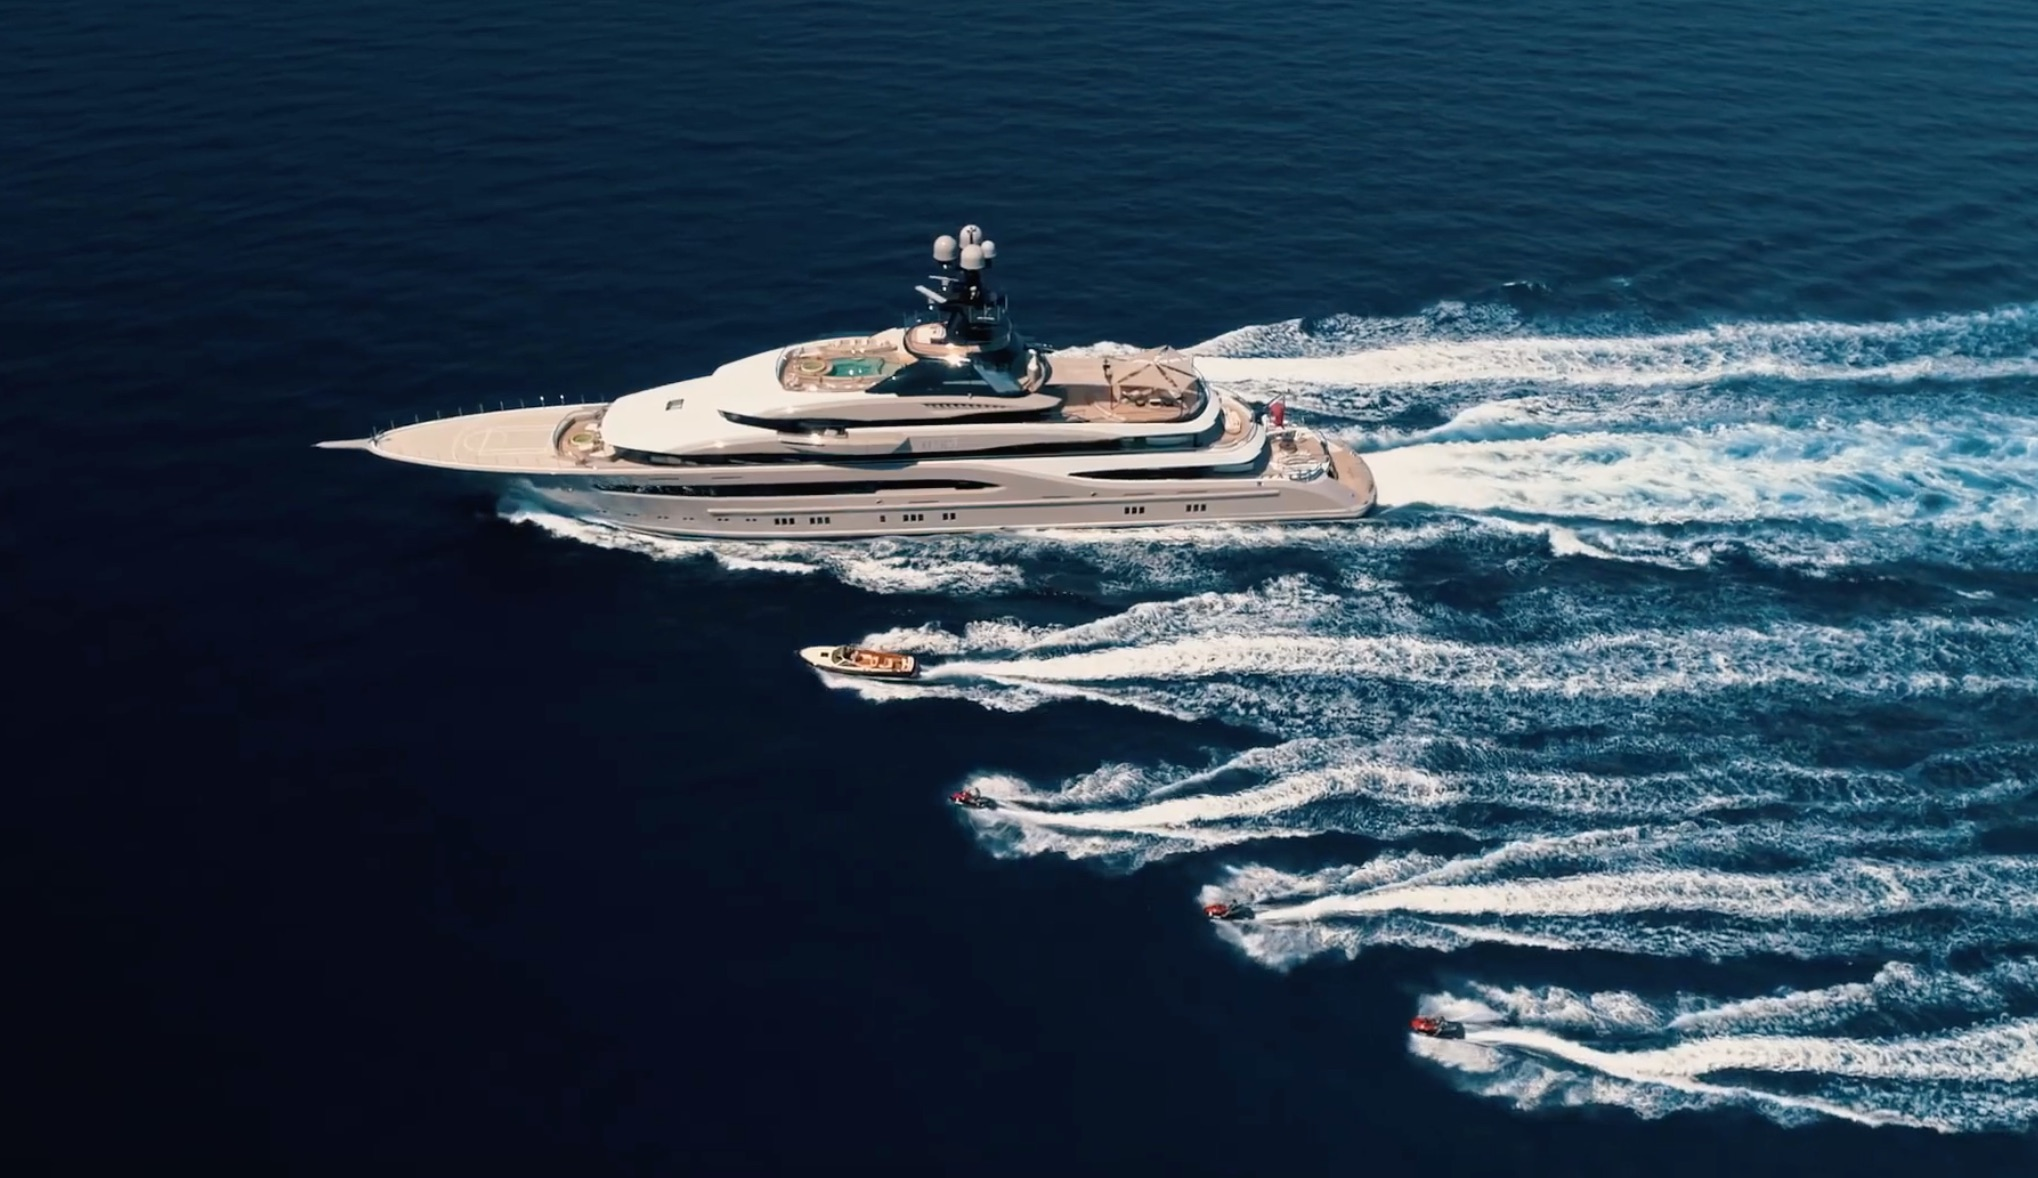 312ft Lurssen superyacht KISMET with its high-tech toys and tenders at sea